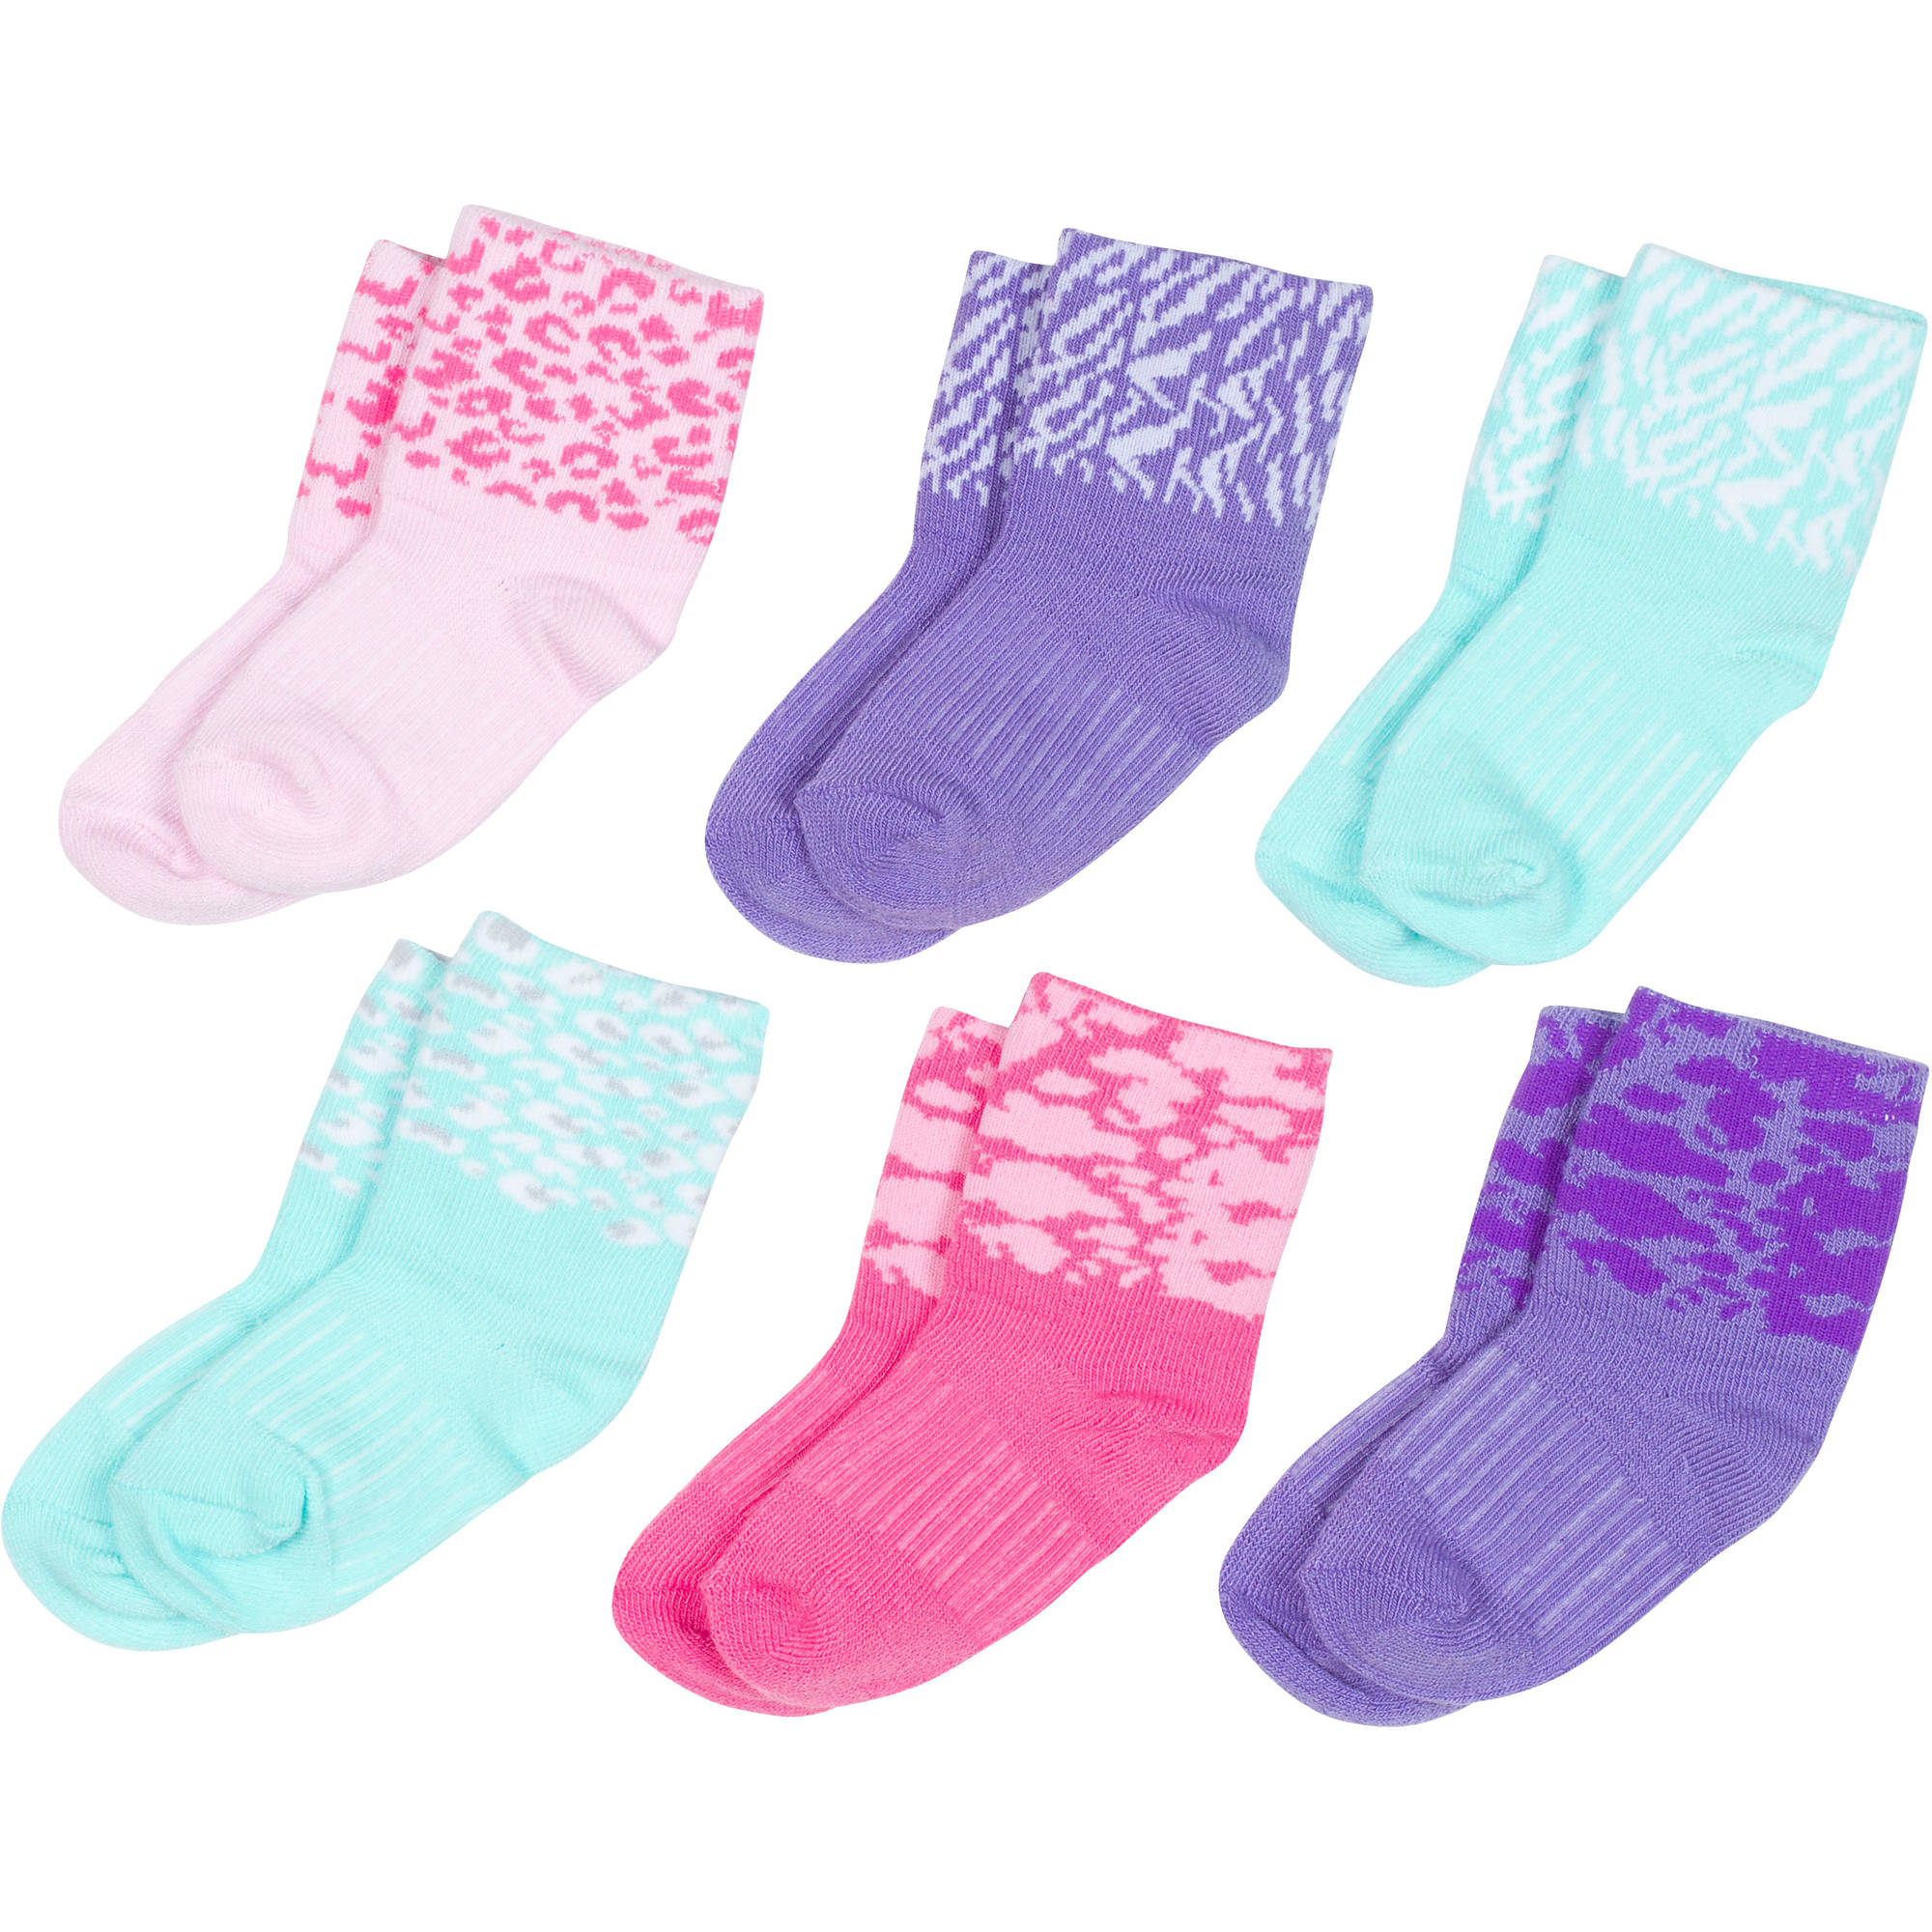 Growing Socks by Peds, Girl Infant, Animal Prints, 6 Pairs